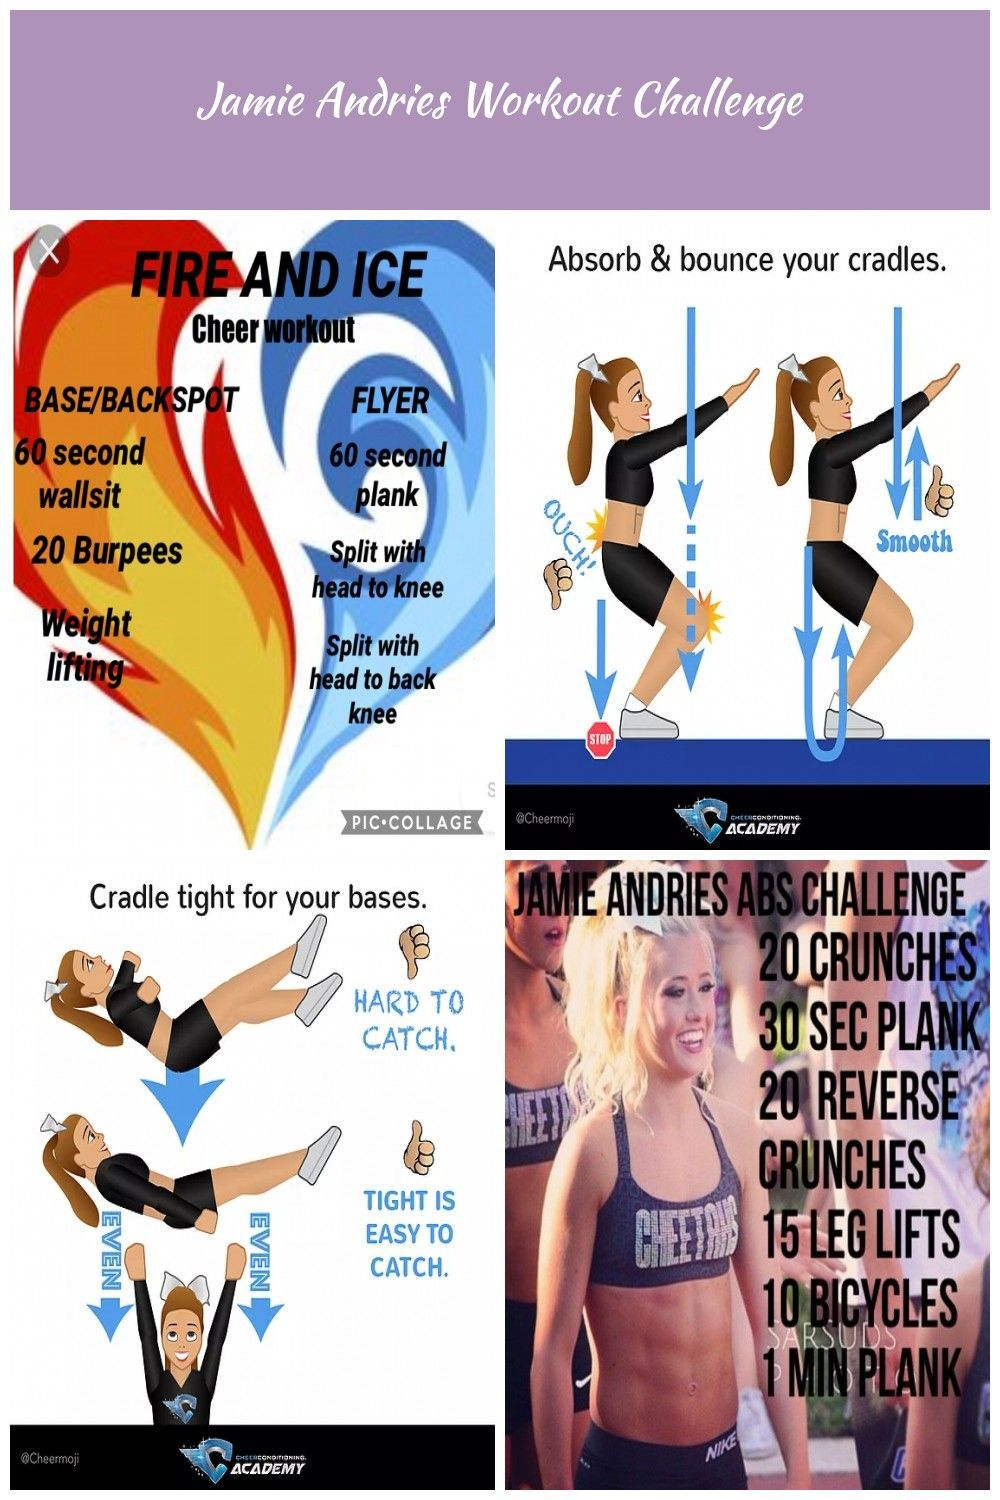 Fire and ice cheer workout lol. I made this for myself cheer Workouts #cheerworkouts Fire and ice cheer workout lol. I made this for myself cheer Workouts #cheerworkouts